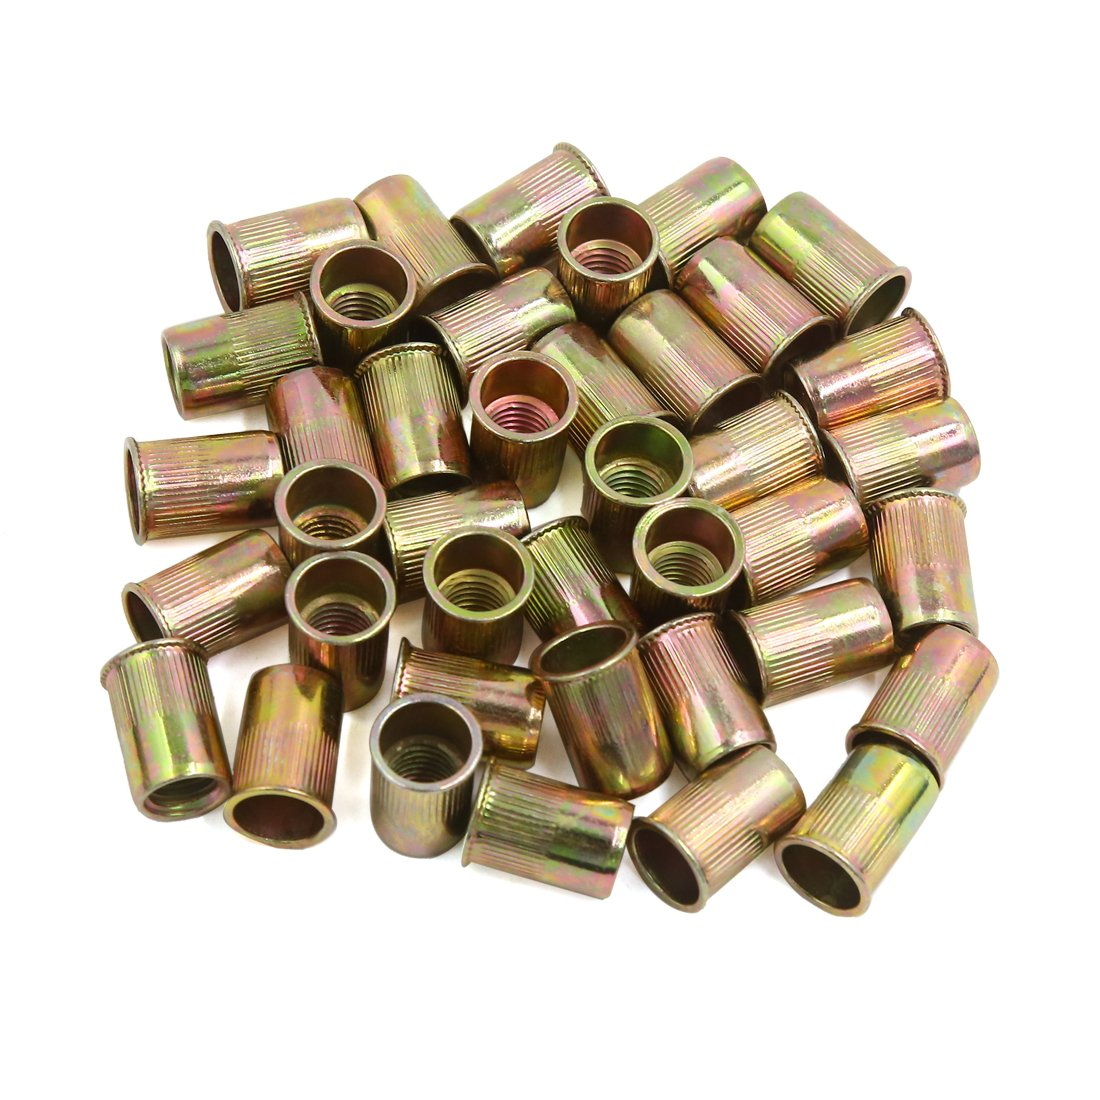 uxcell 40pcs M10 Bronze Tone Small Head Stainless Steel Thread Metal Rivet Nut Nutserts